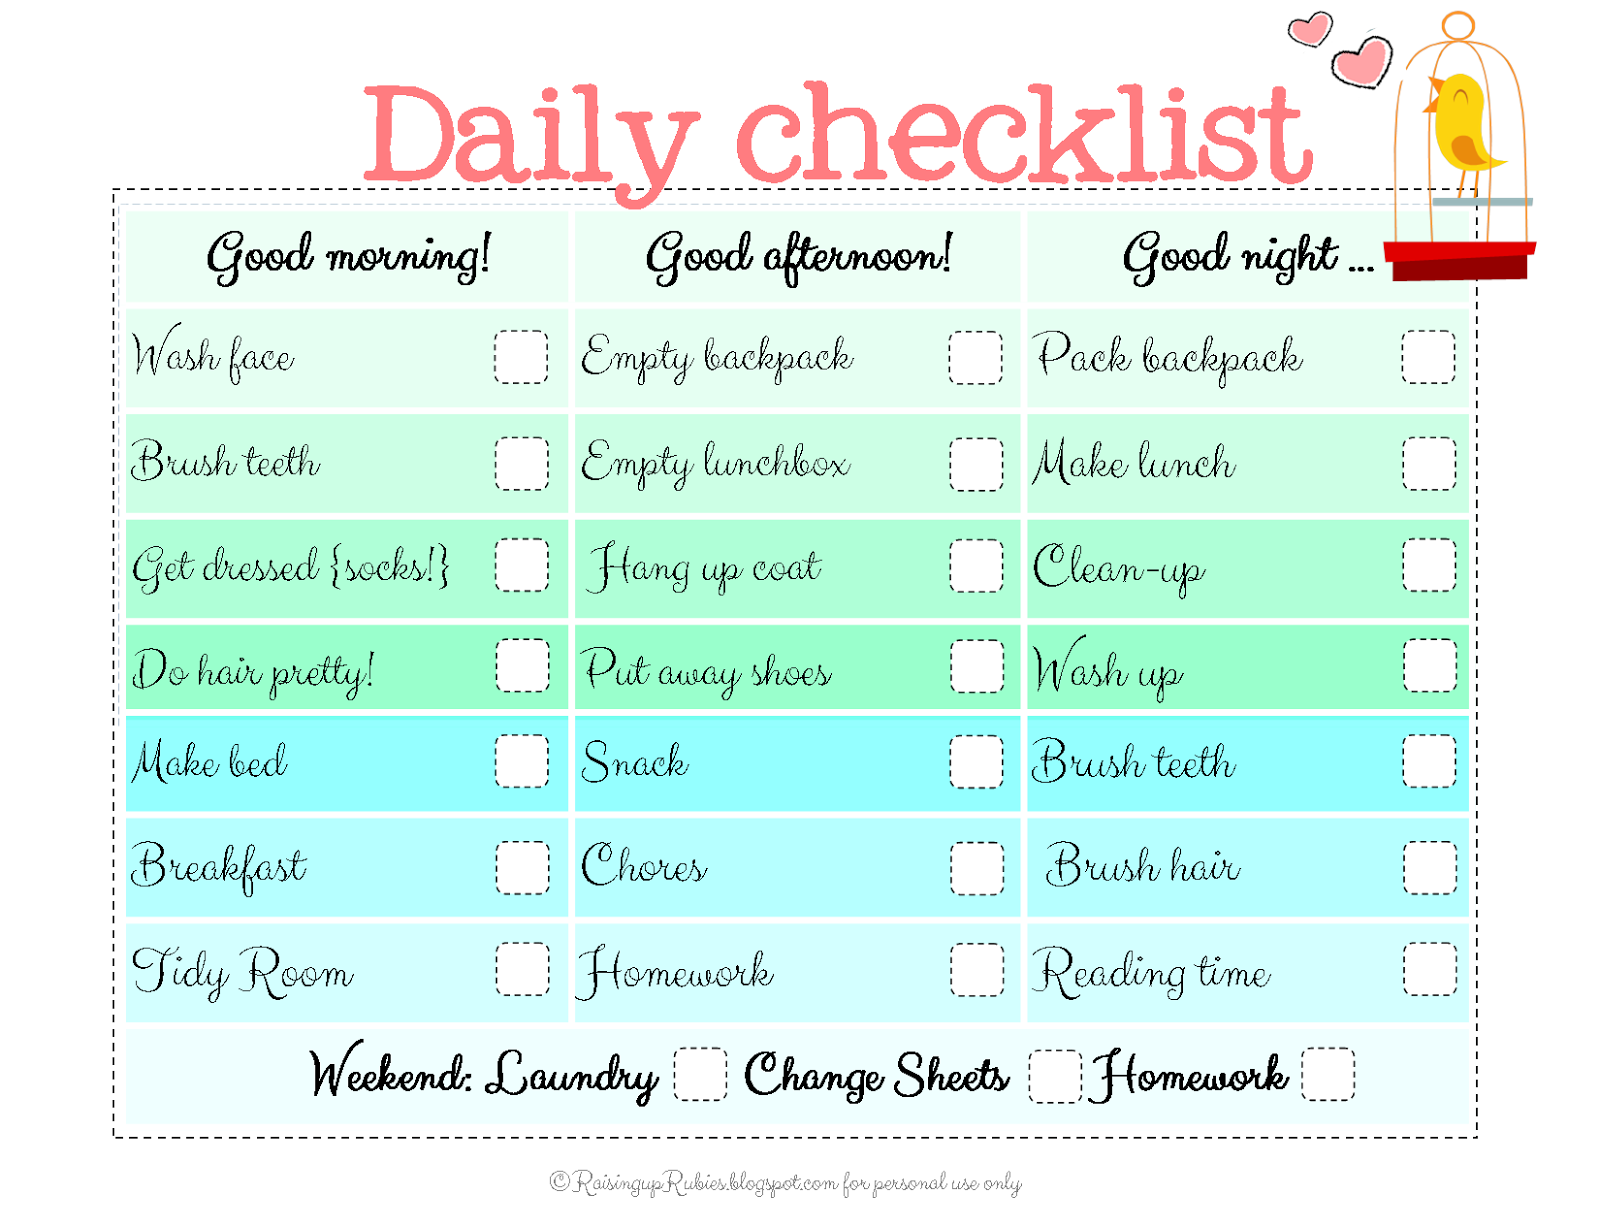 Forklift Daily Checklist Free Print Out | Search Results | Calendar ...